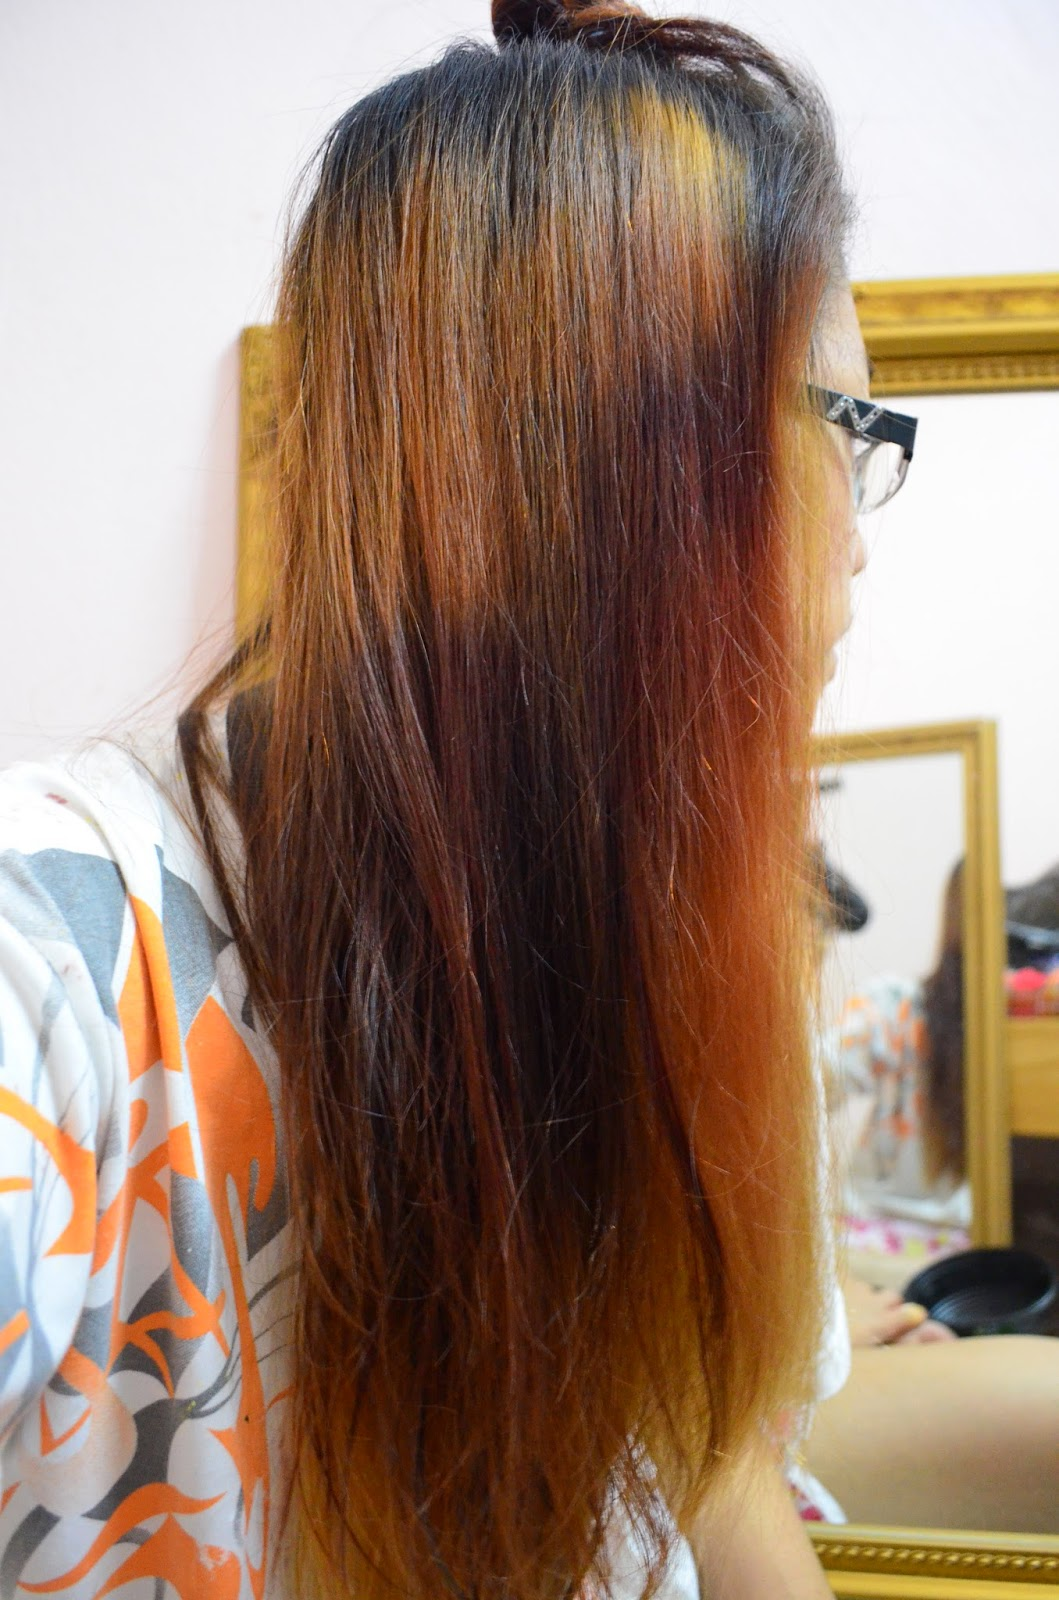 how to fix uneven hair color after bleaching